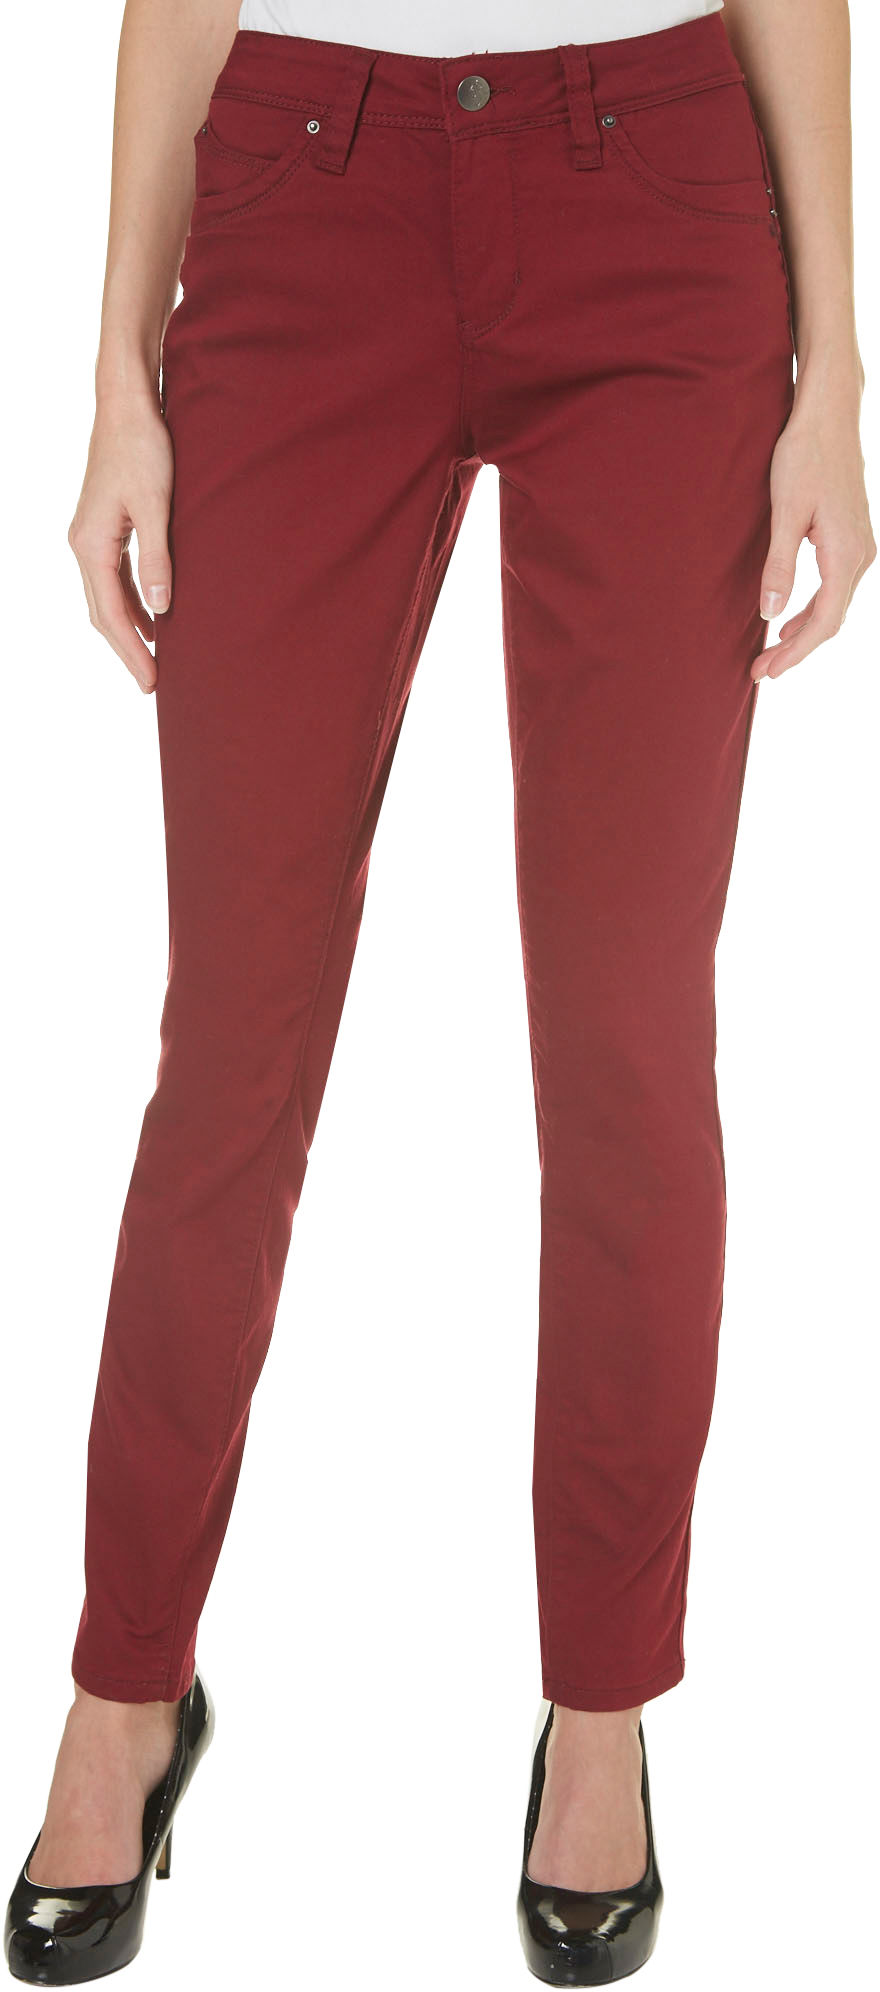 Royalty by YMI Womens WBB Colored Skinny Jeans | eBay